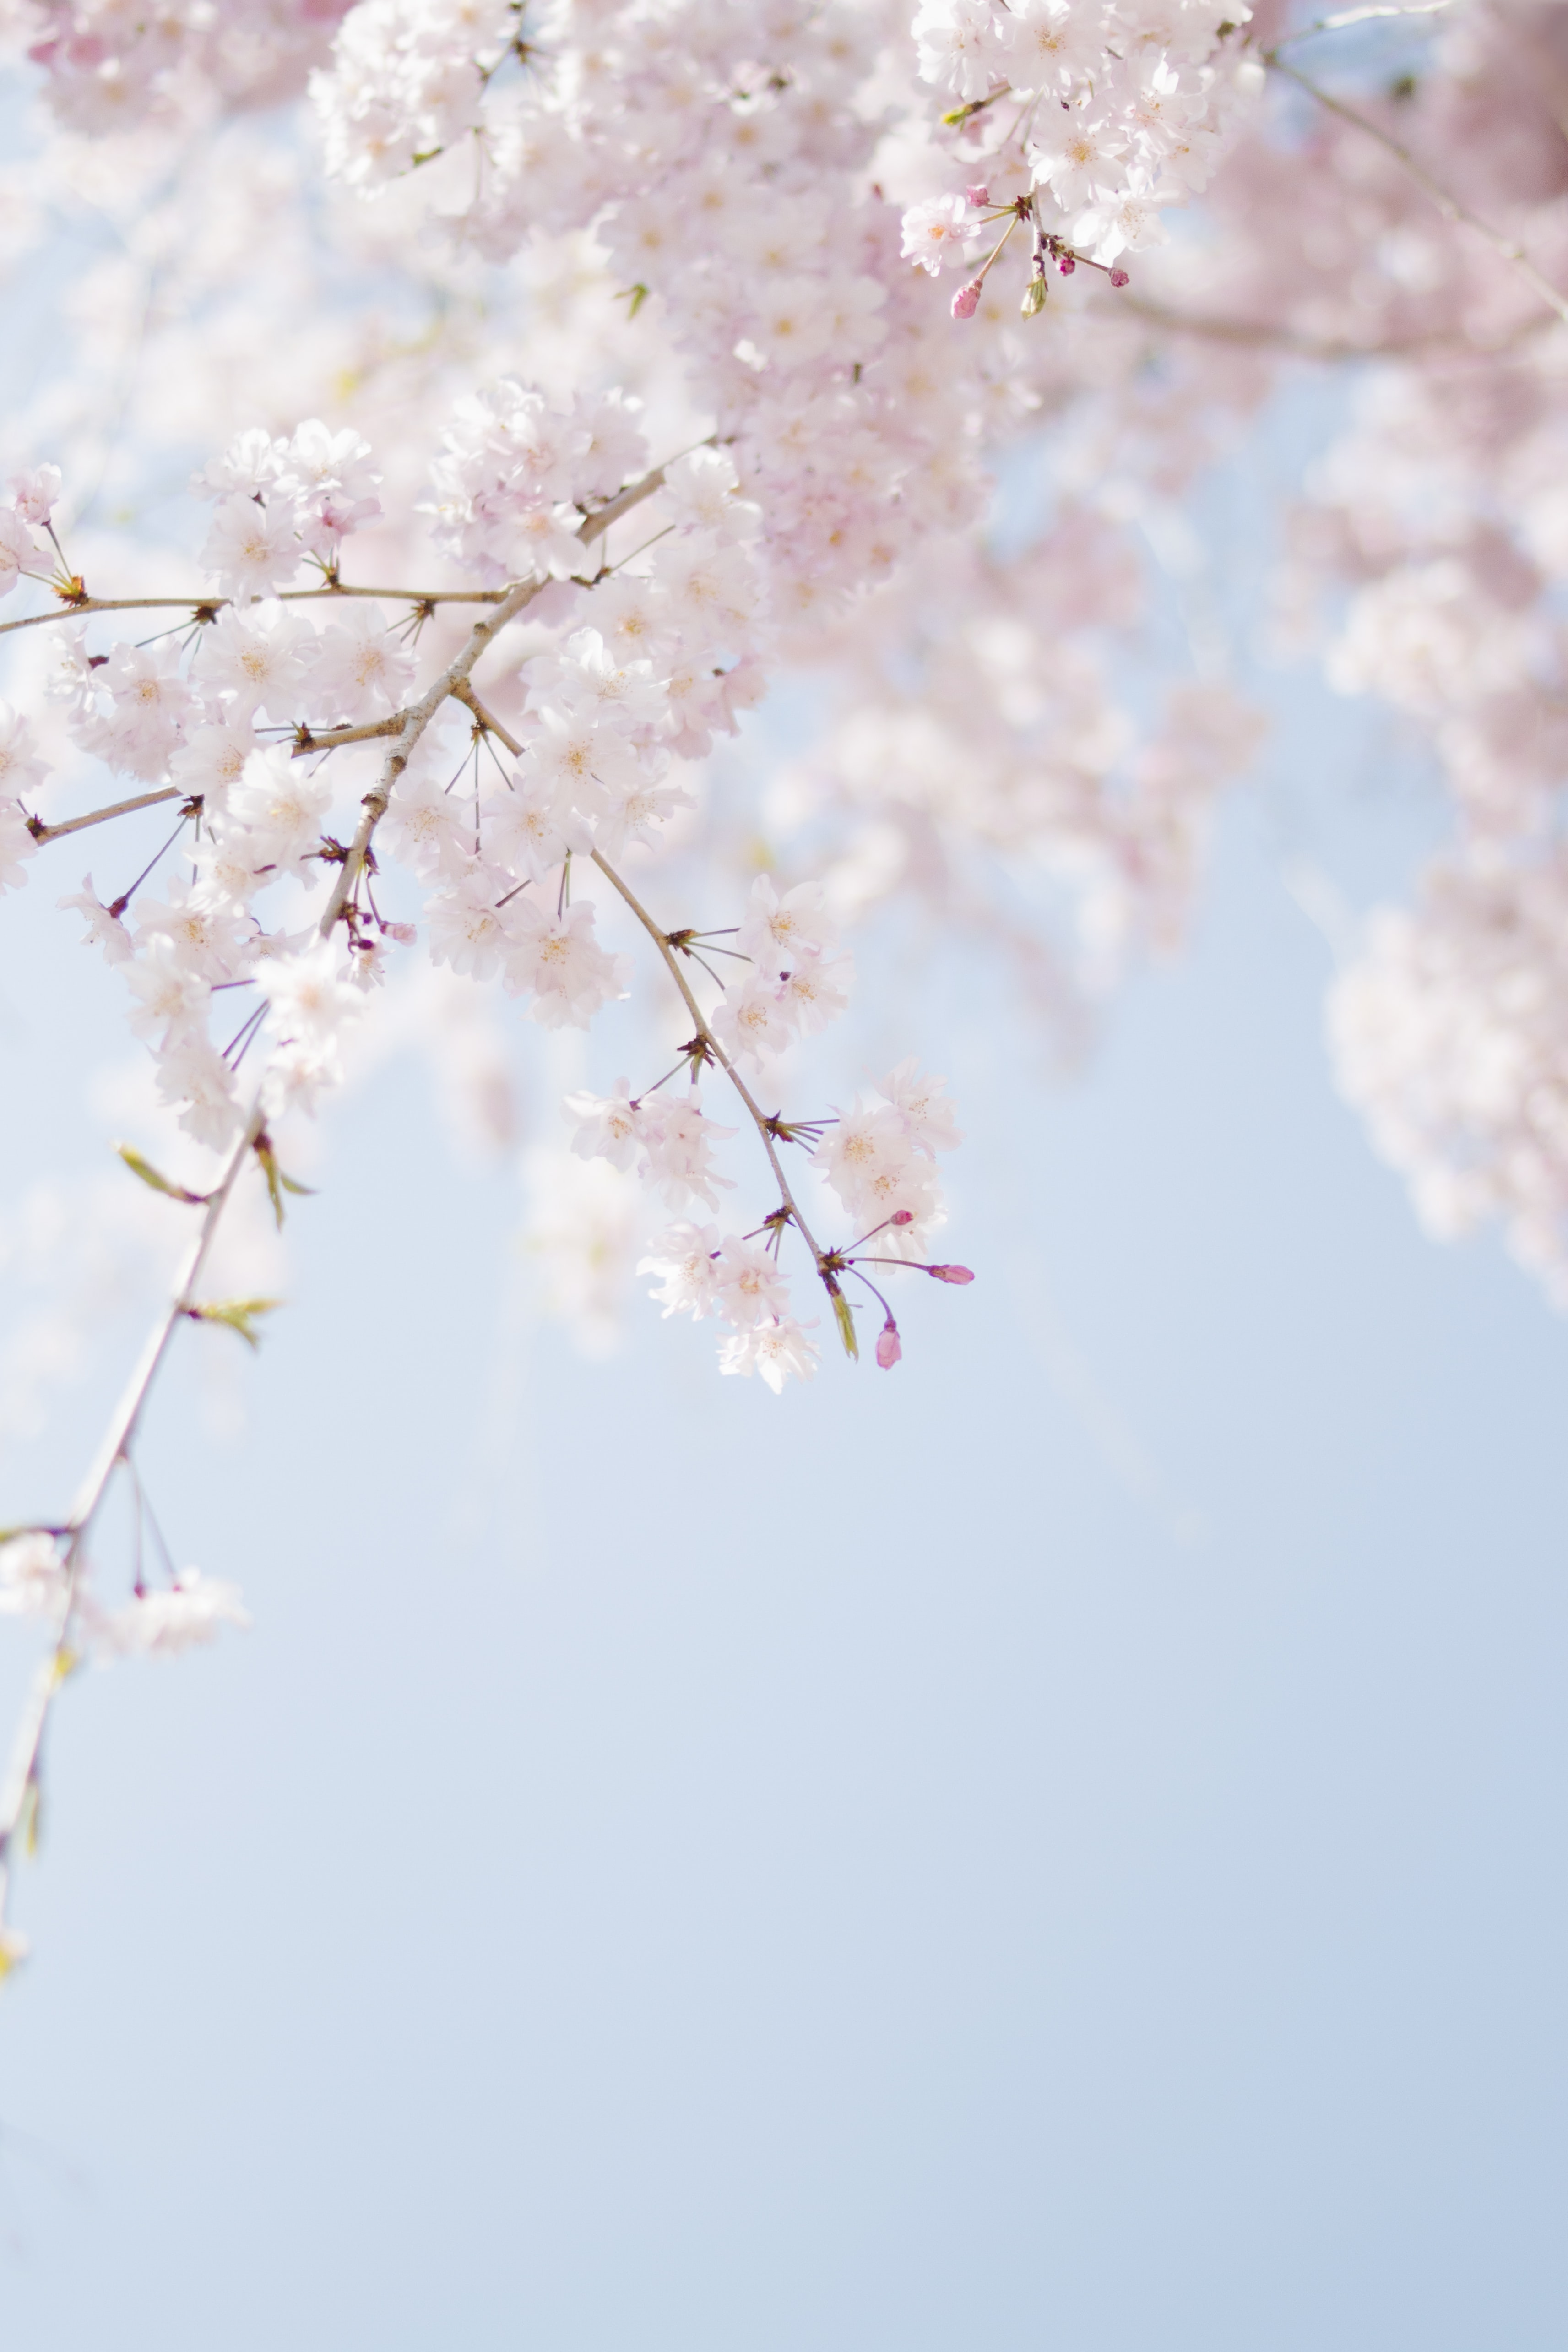 Cherry Blossom Landscape Wallpapers Download at